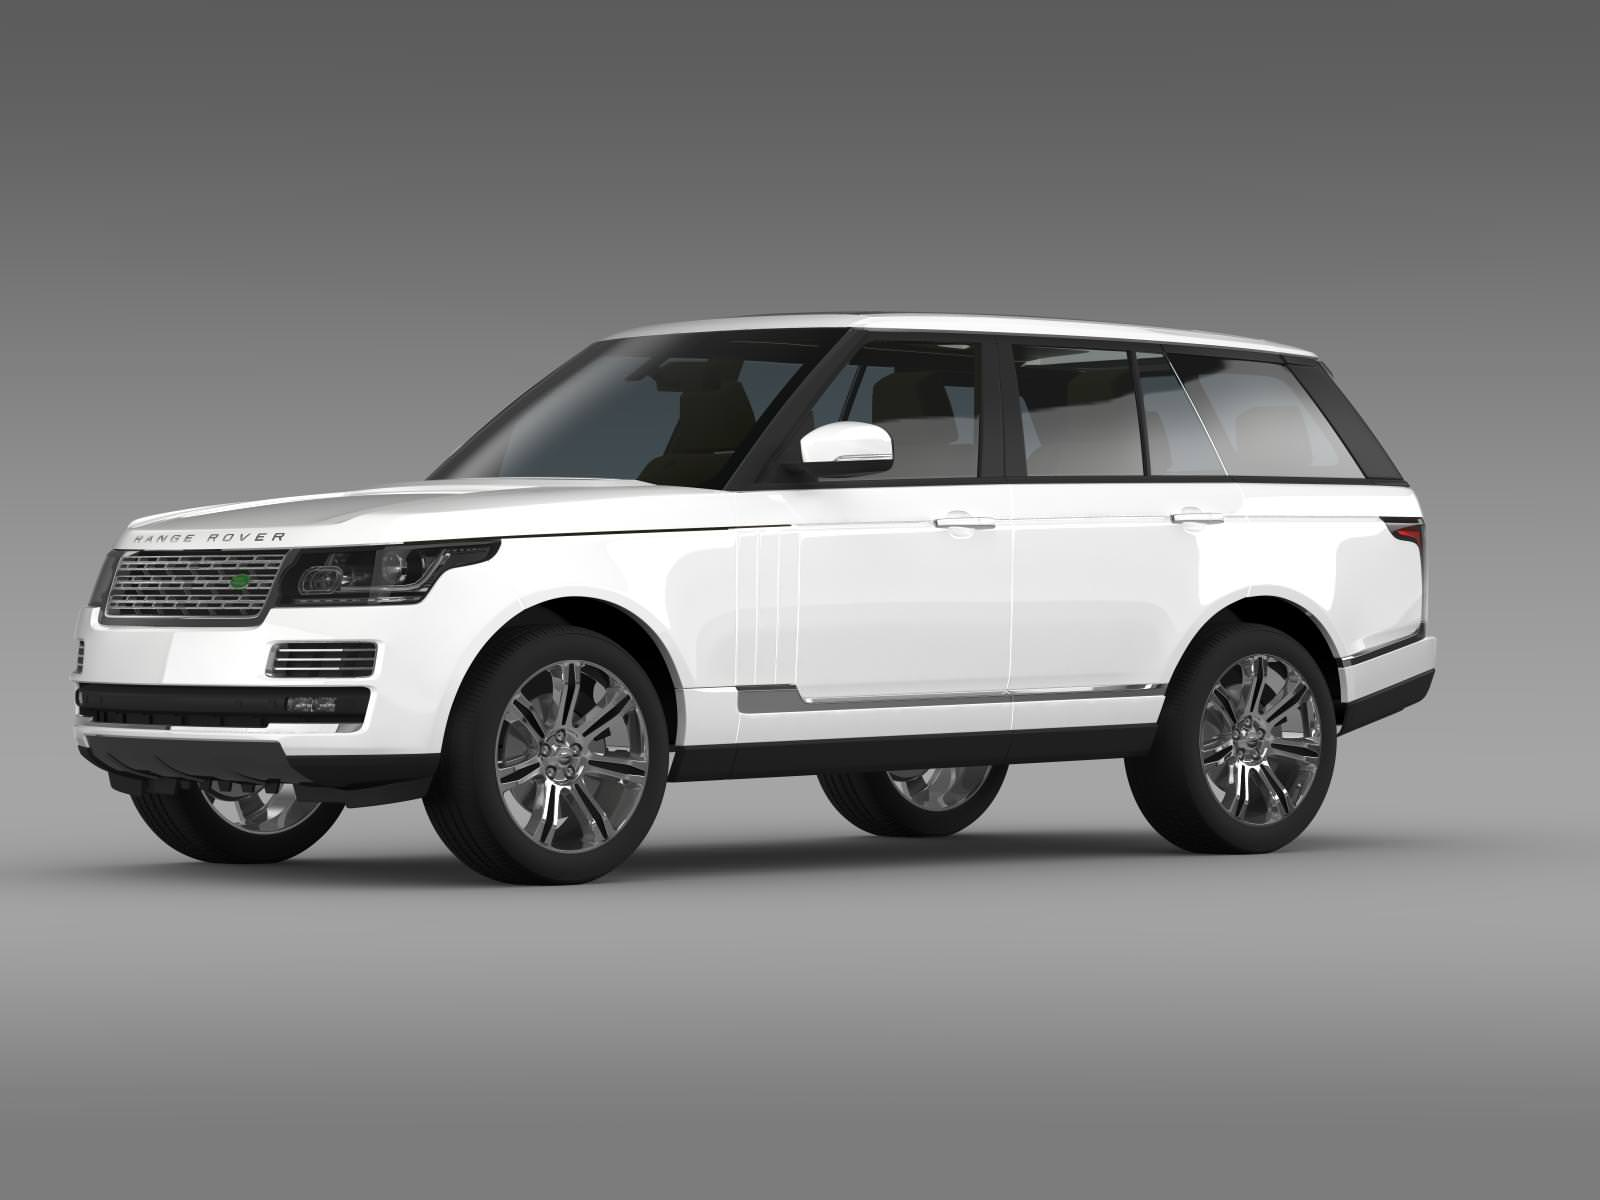 range rover autobiography black l405 2014 3d model max obj 3ds fbx c4d lwo lw lws. Black Bedroom Furniture Sets. Home Design Ideas